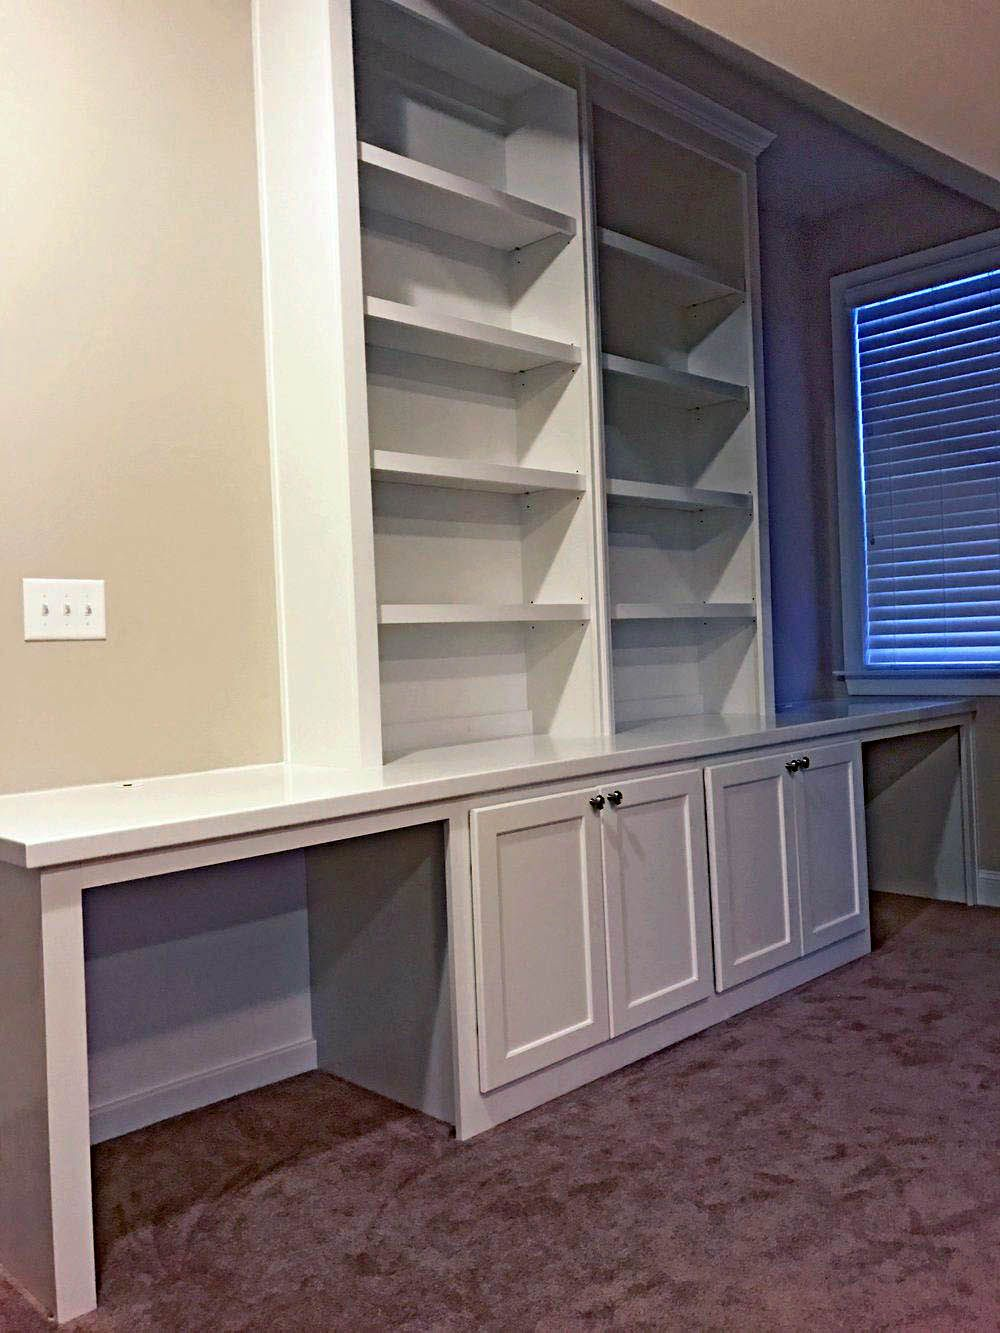 Awesome double desk corner unit tips for 2019 Double